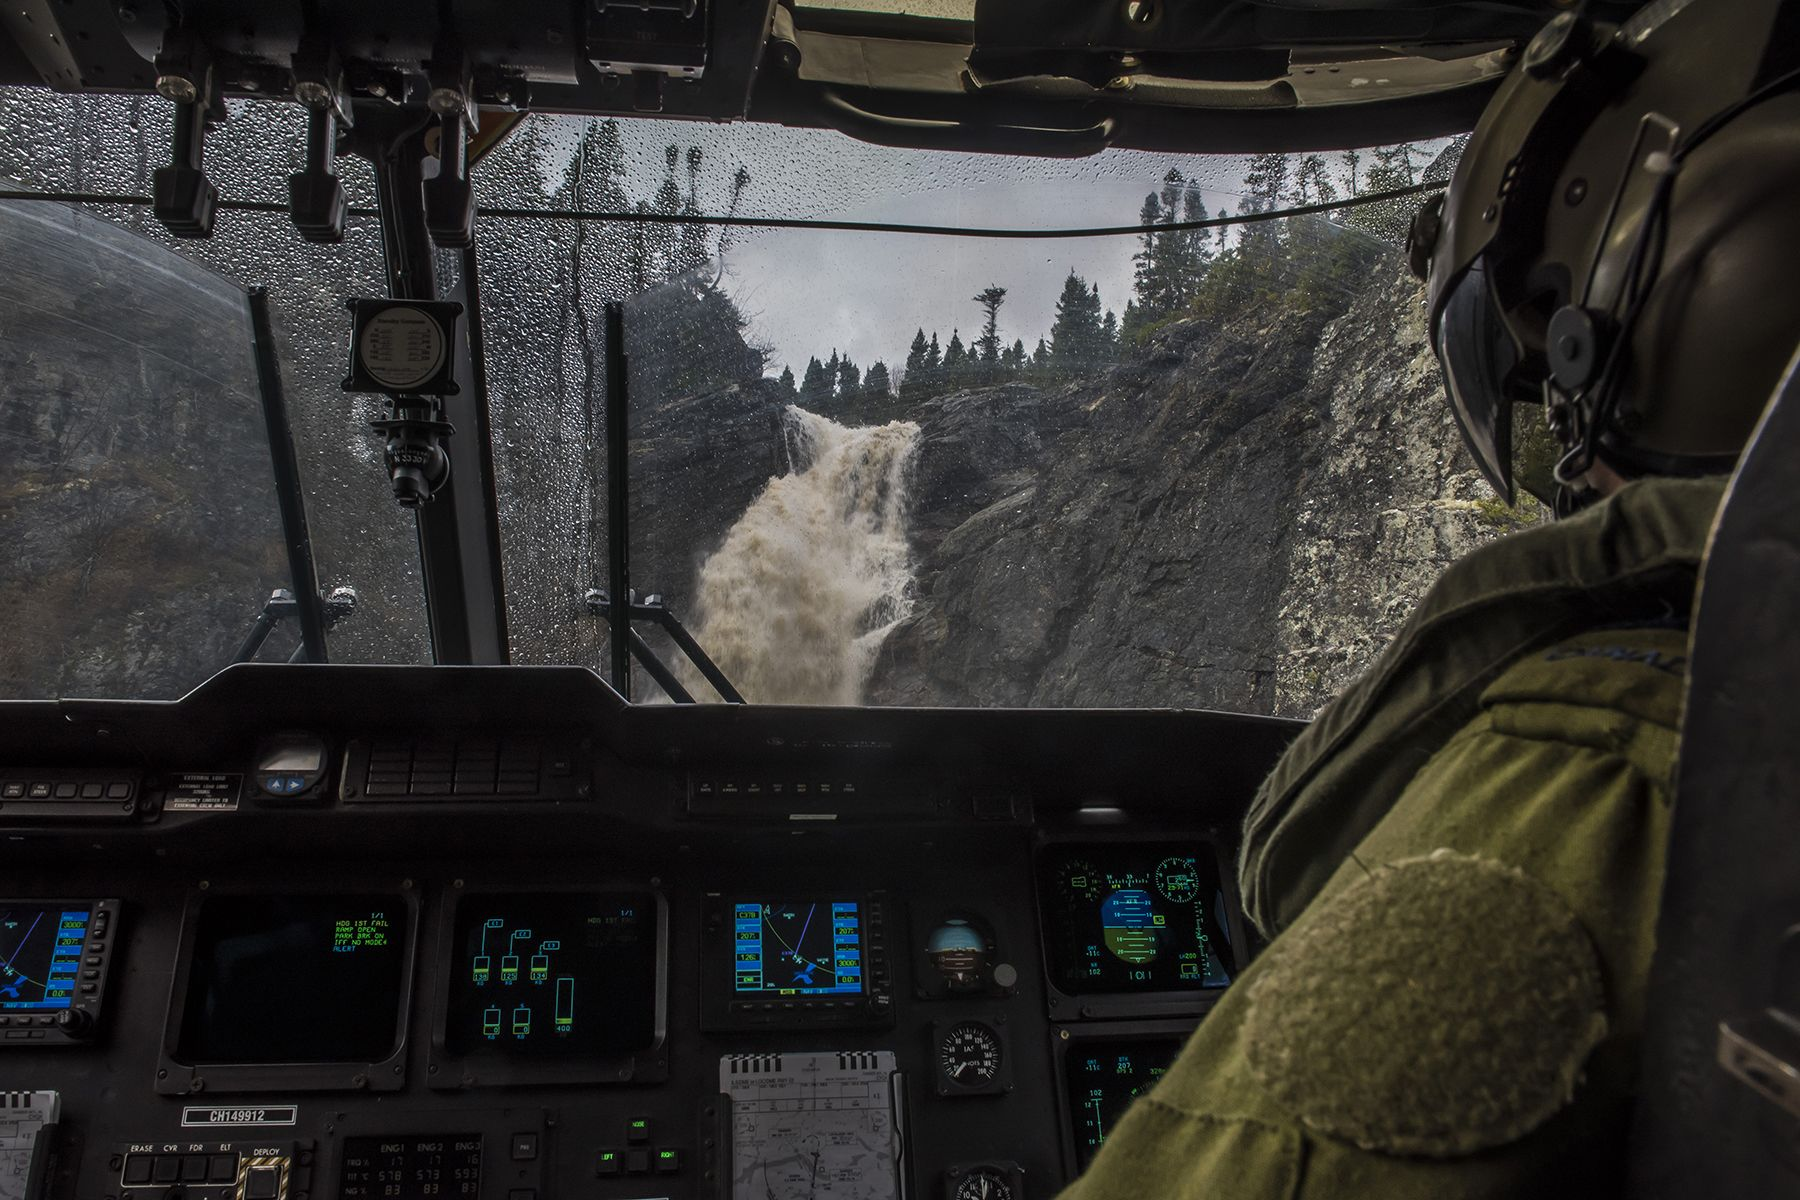 A Newfoundland waterfall's movement offers a 9 Wing Gander CH-149 Cormorant helicopter crew from 103 Search and Rescue Squadron a challenging optical illusion as they manoeuvre in a tightly confined area to land on the rocky shore below. PHOTO: Corporal Anthony Laviolette, SW2016-0099-26